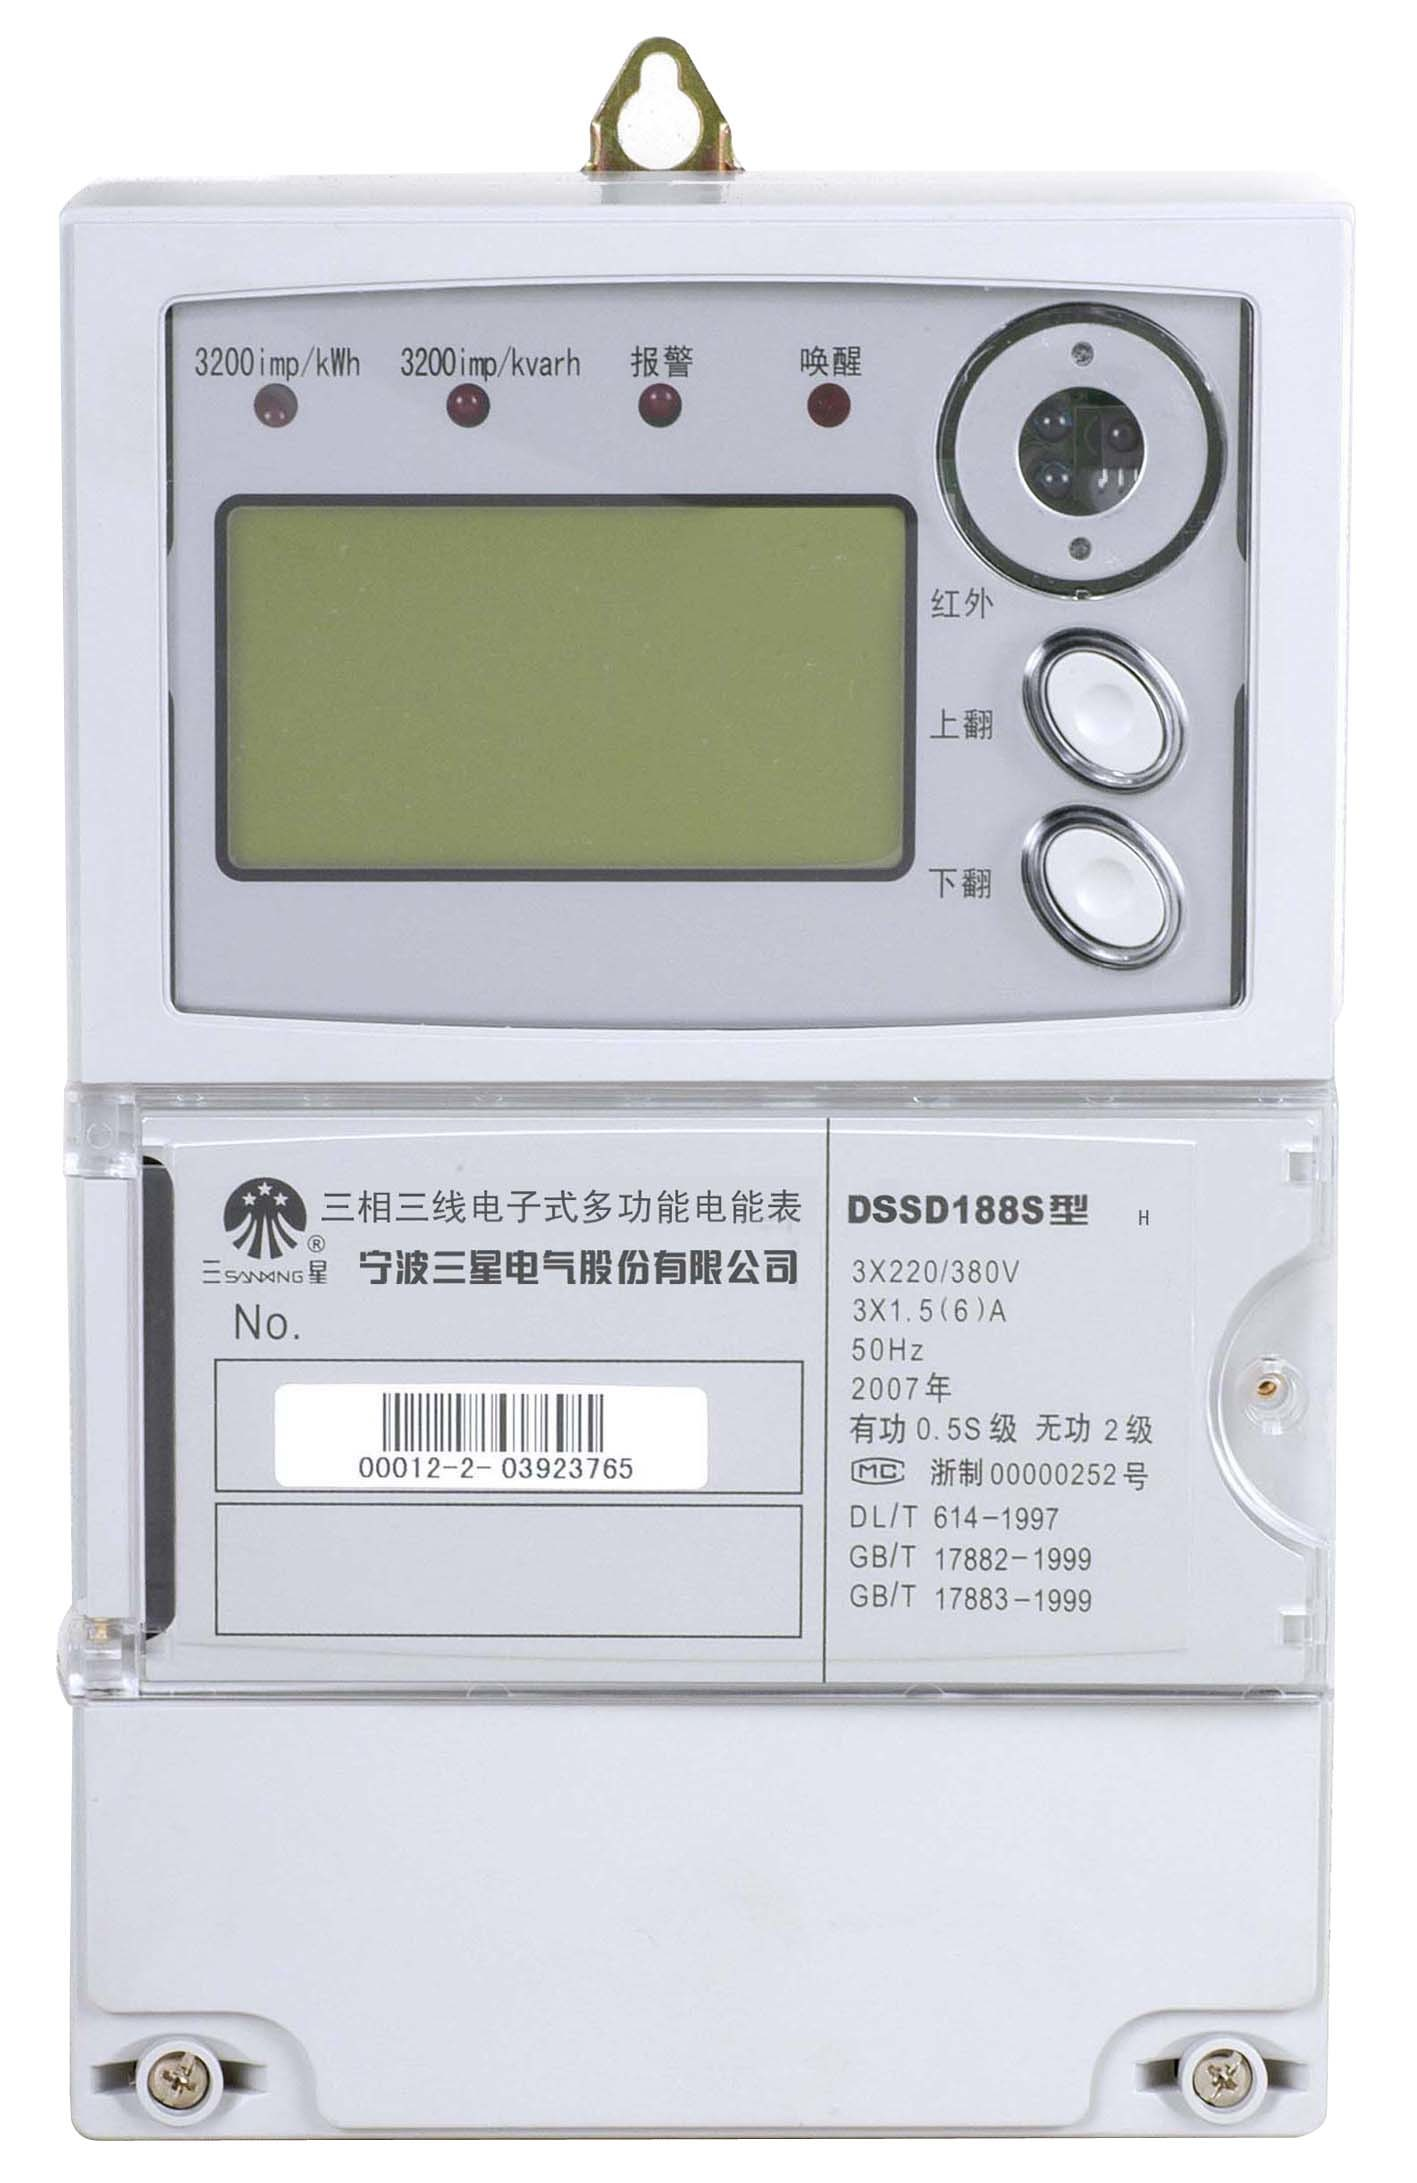 China Three Phase Four Wire Gprs Multi Electrical Technology How To A 3phase Kwh Meter From The Supply Function Static Electronic Electricity